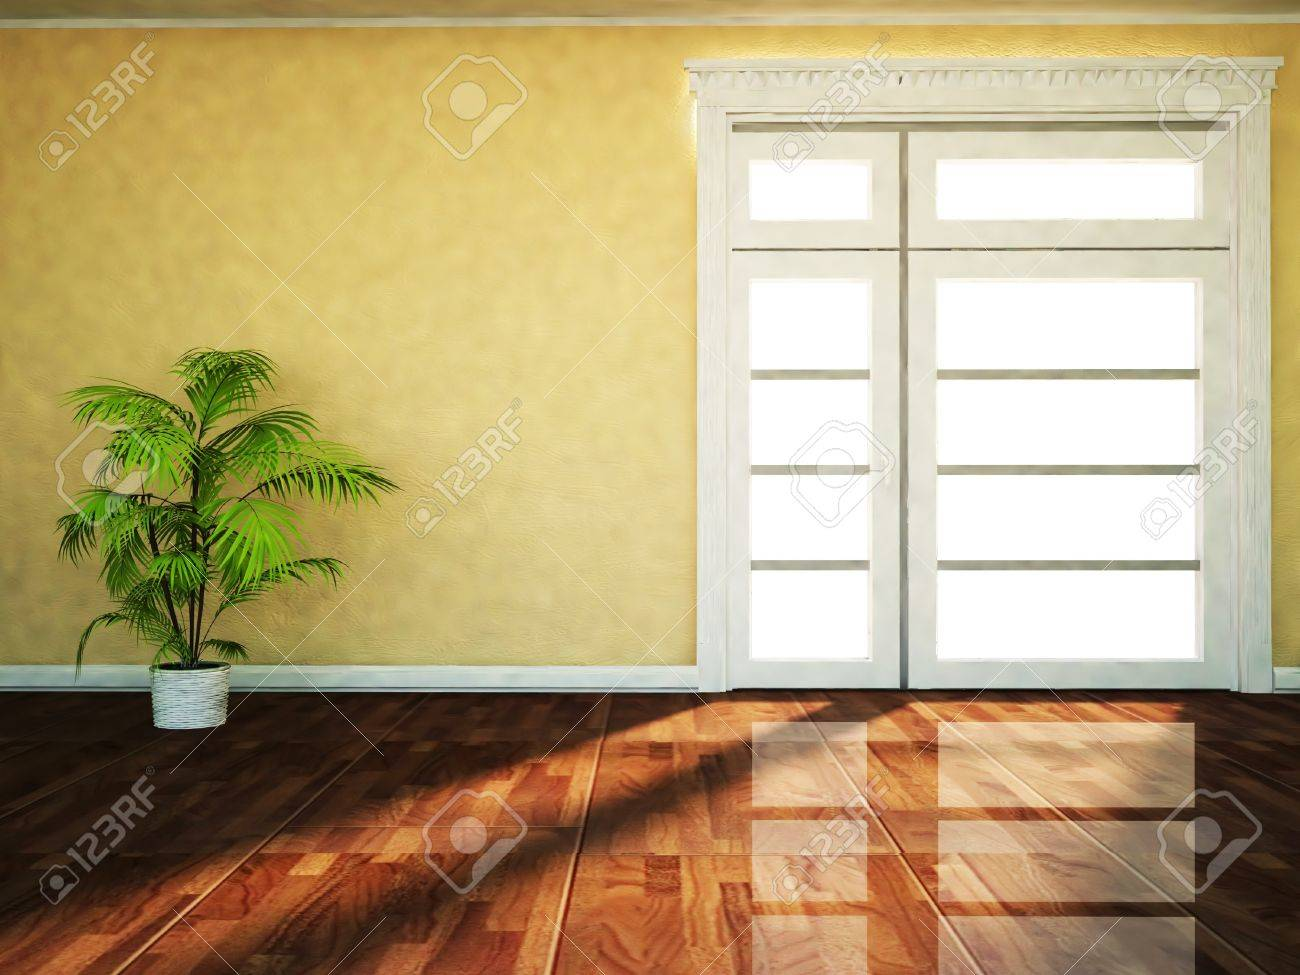 a plant near the window, rendering Stock Photo - 18764180